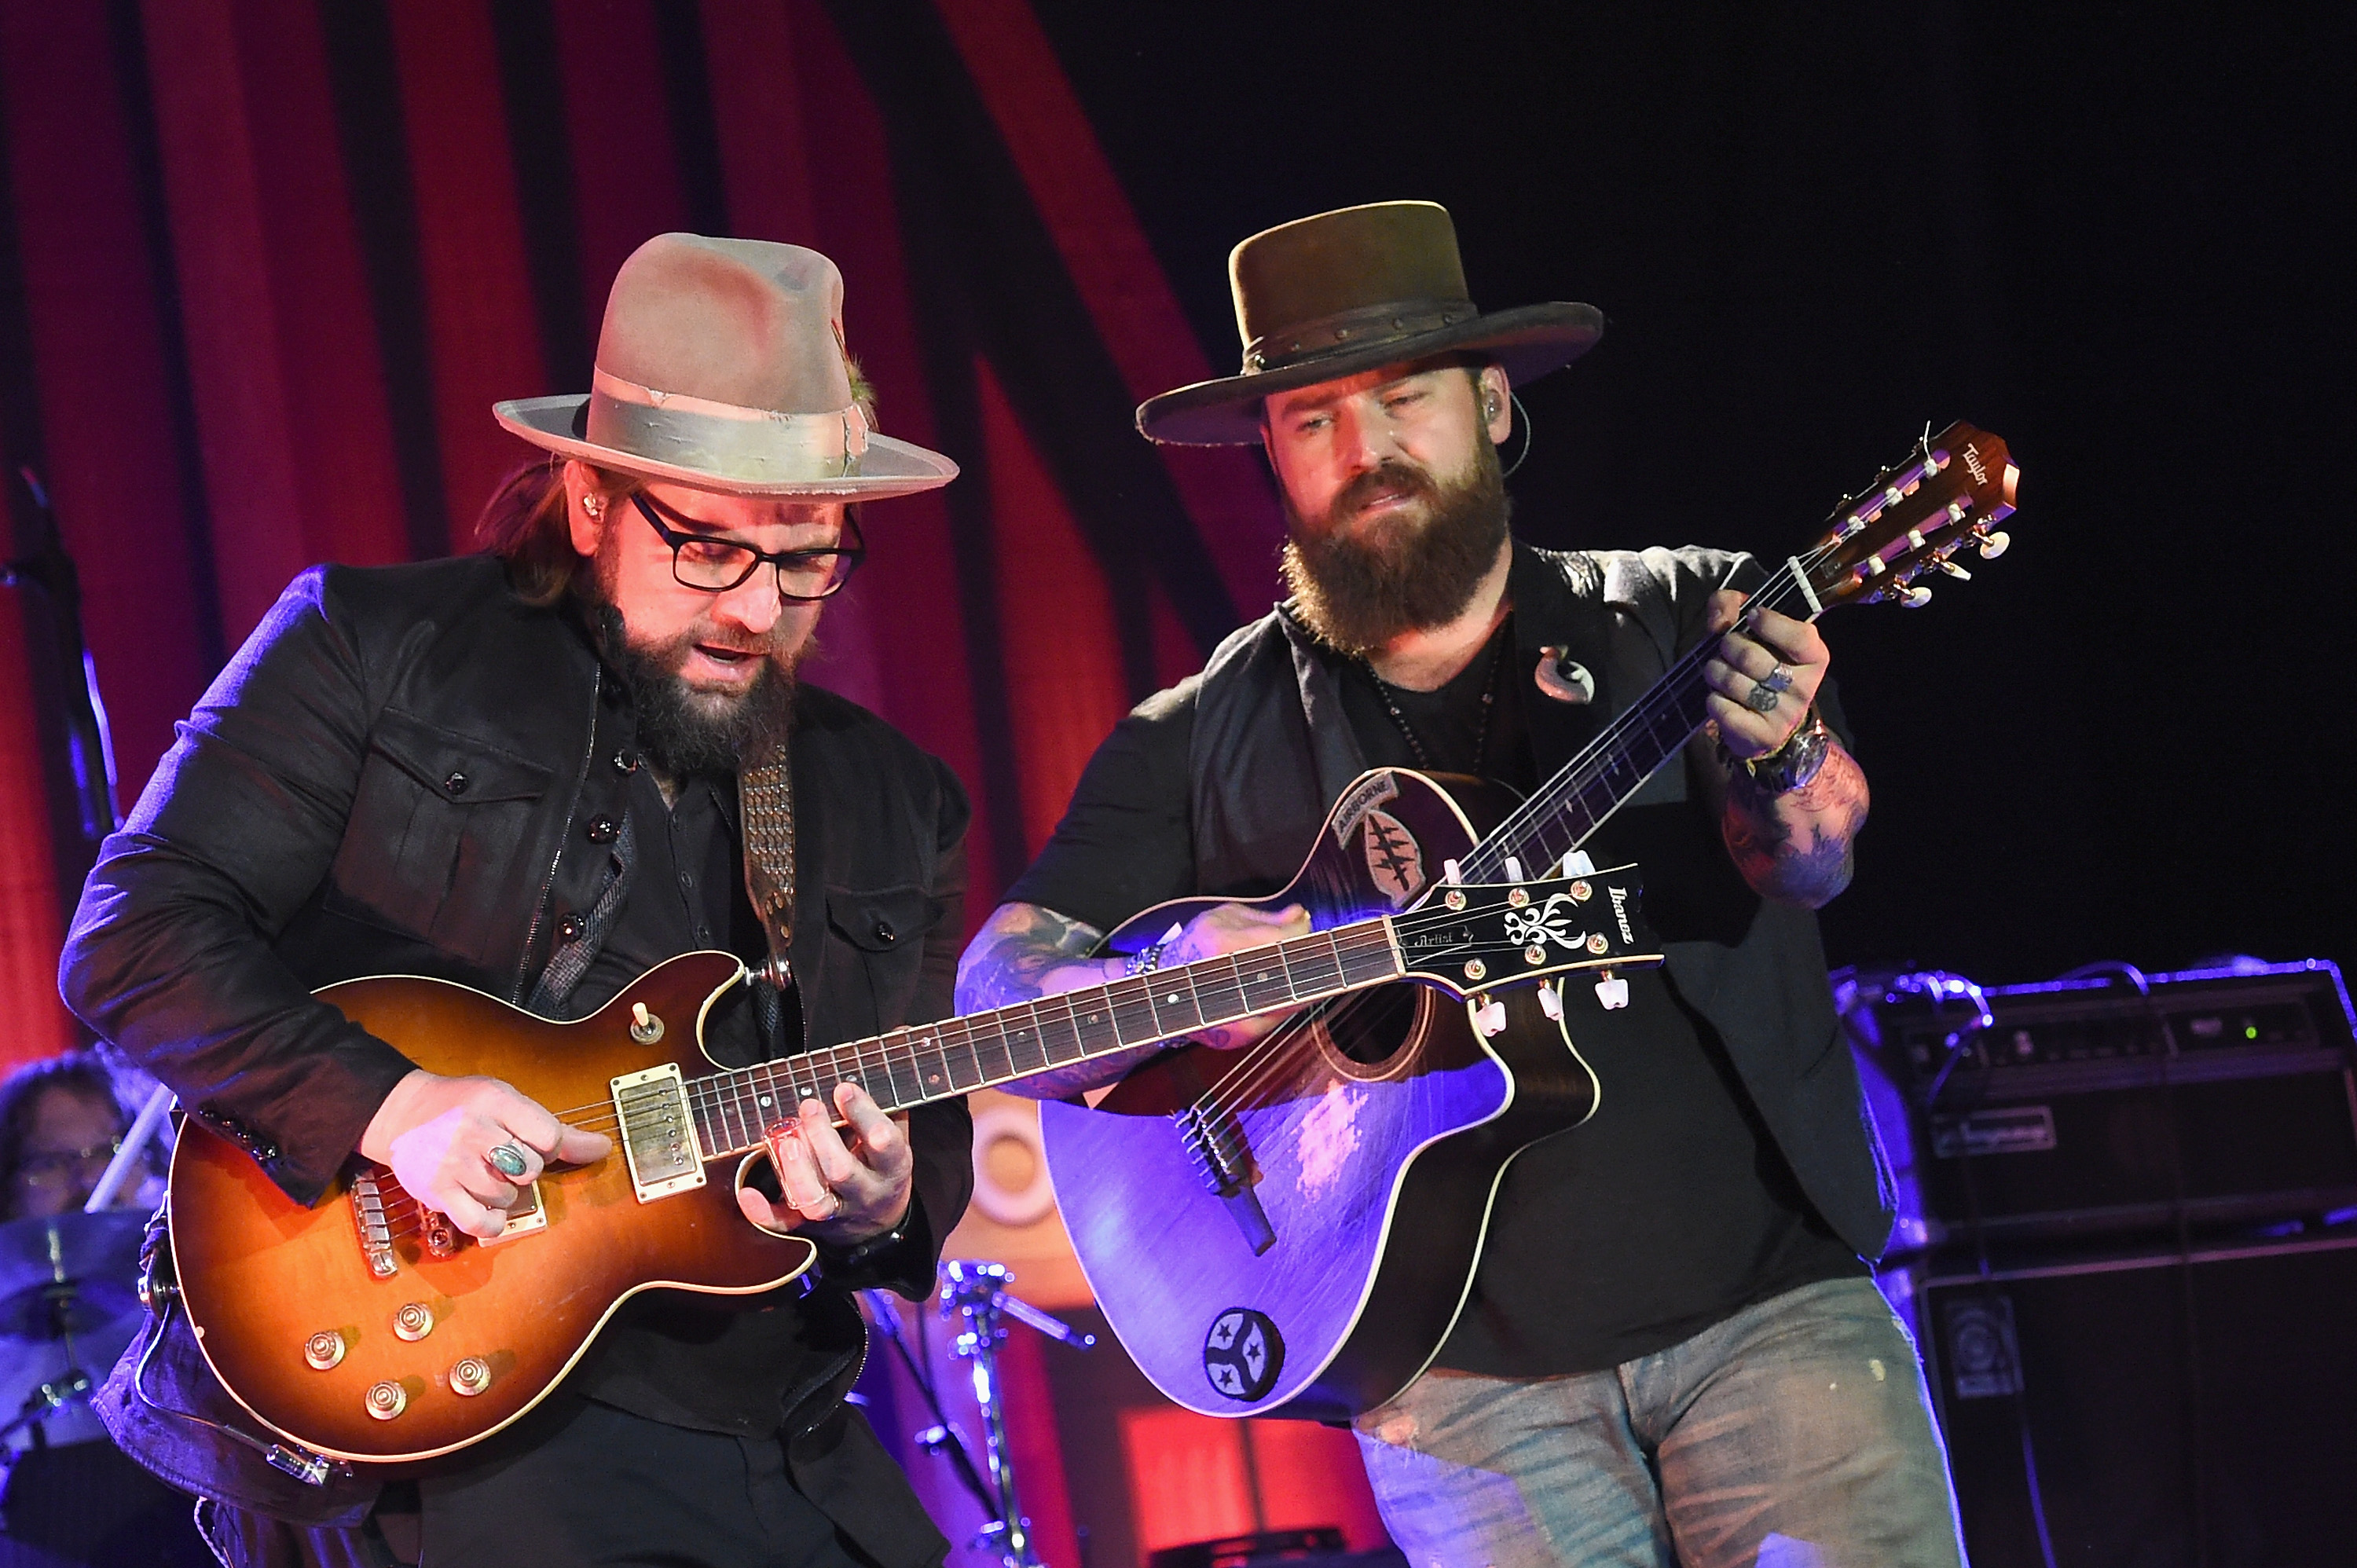 Coy Bowles and Zac Brown of the Zac Brown Band perform during CRS 2017 Day 1 on February 22, 2017 in Nashville, Tennessee.